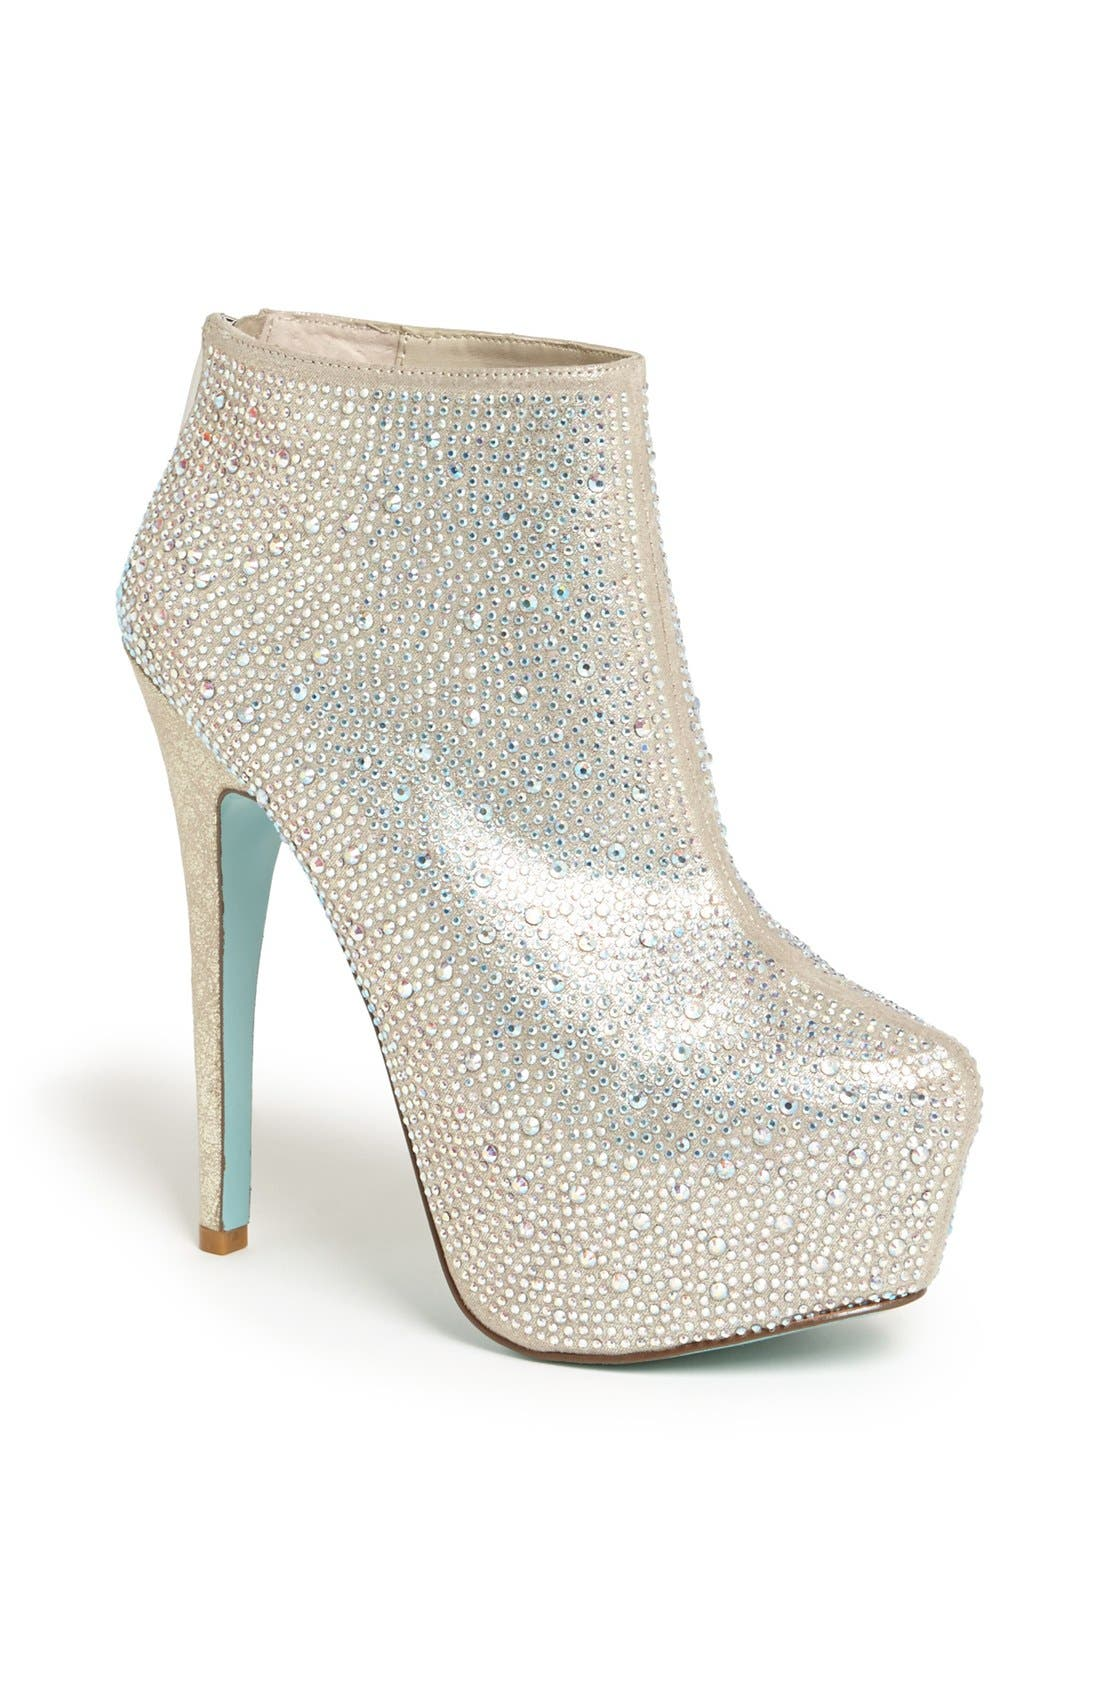 Main Image - Blue by Betsey Johnson 'Bride' Bootie